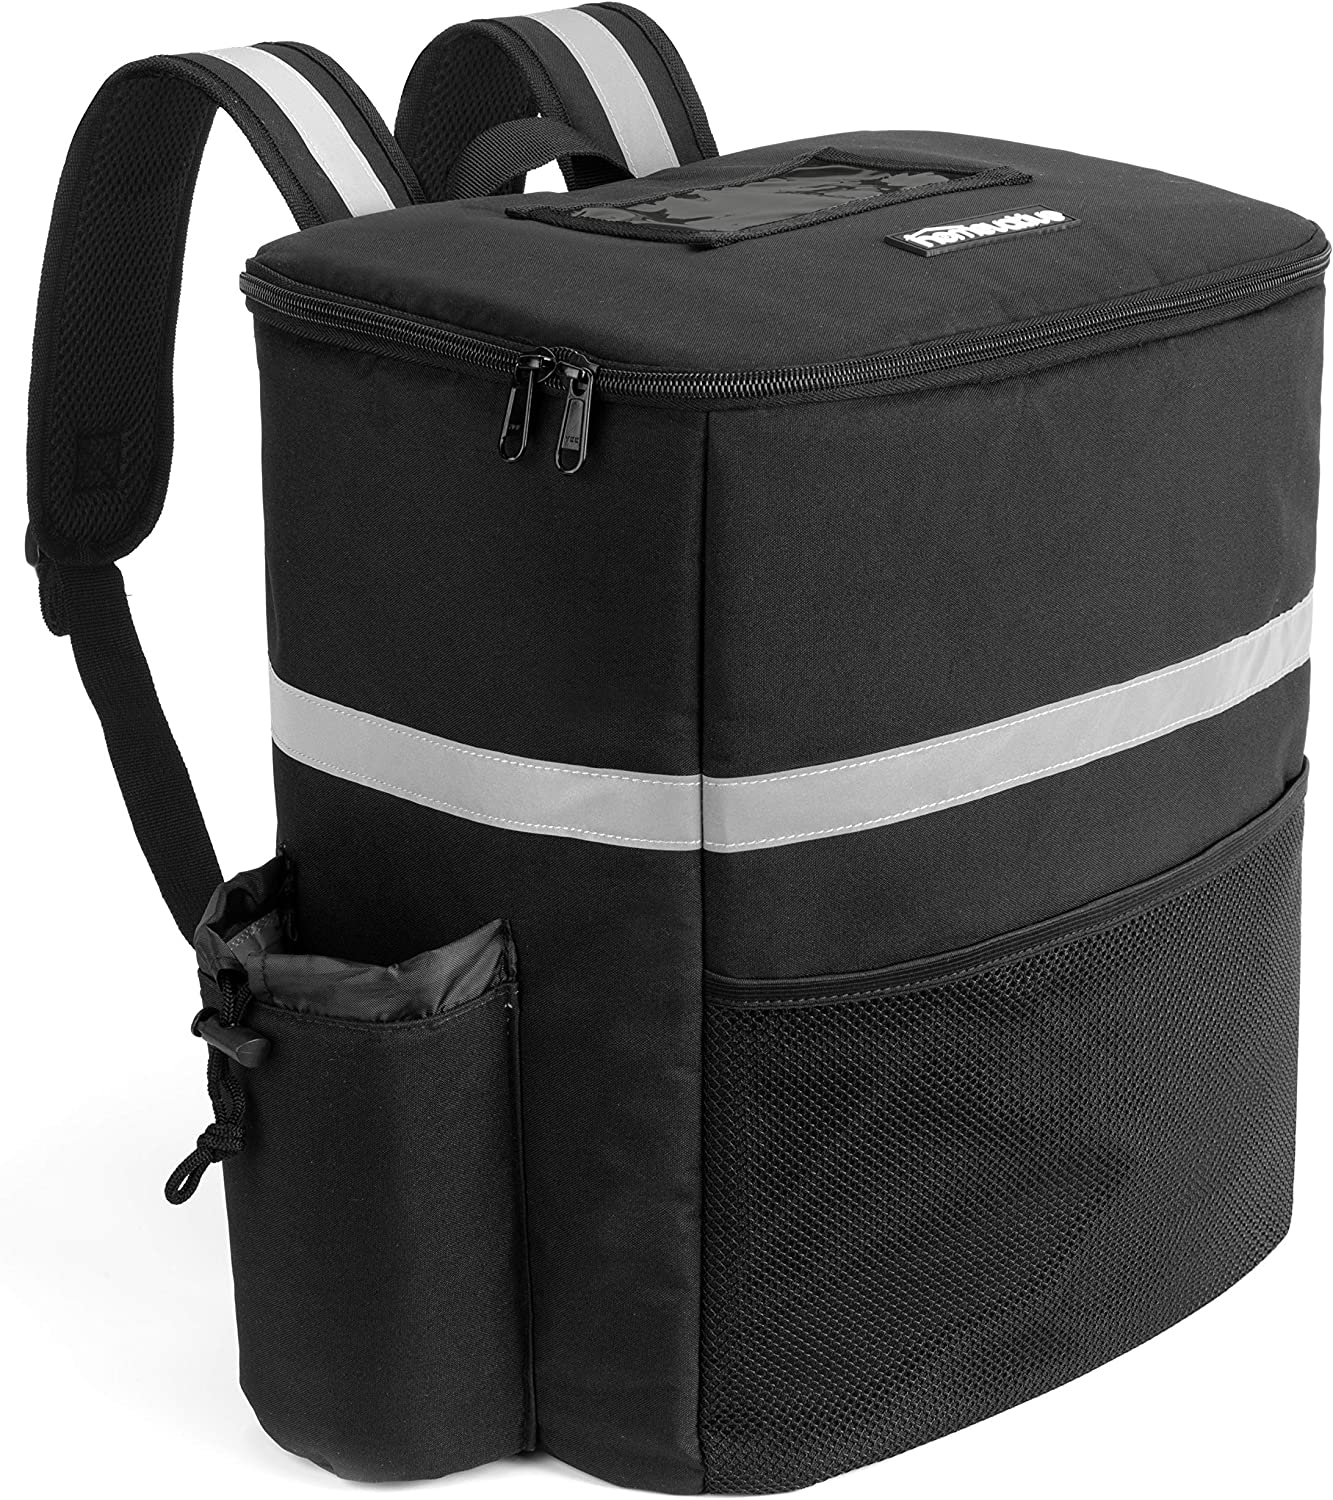 Homevative Thermal Insulated Food Delivery Backpack